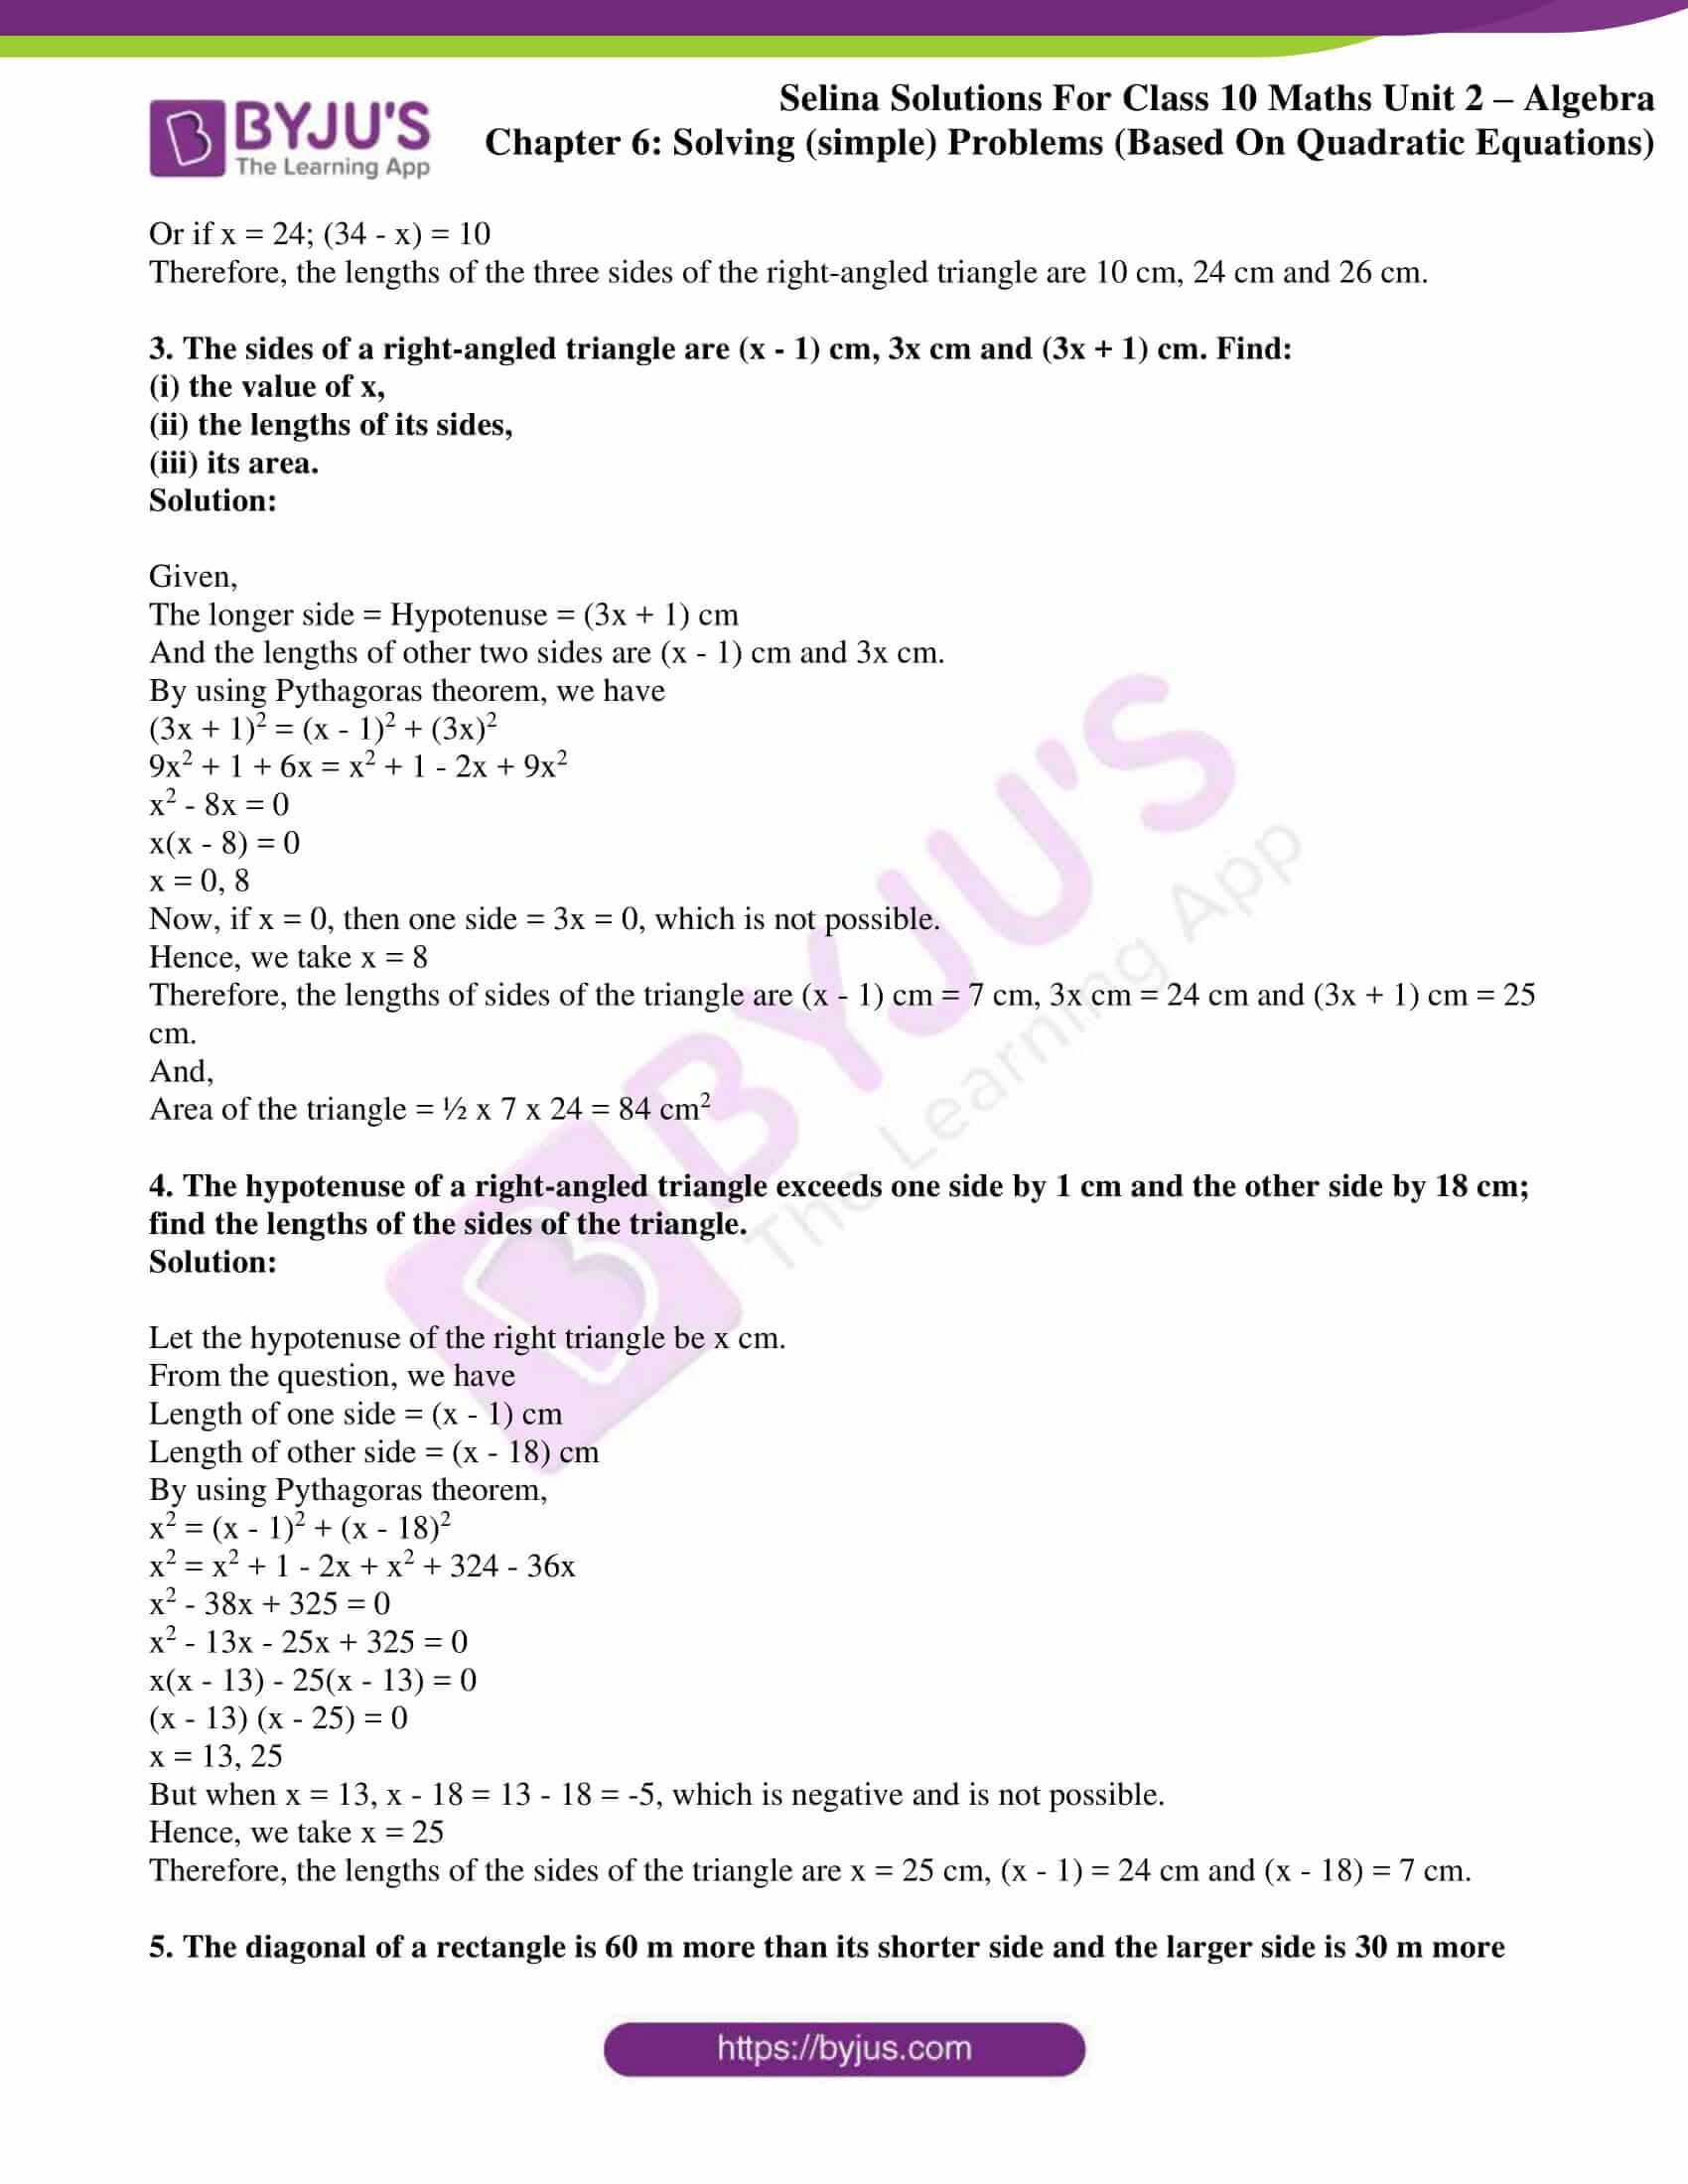 selina solution concise maths class 10 chapter 6b